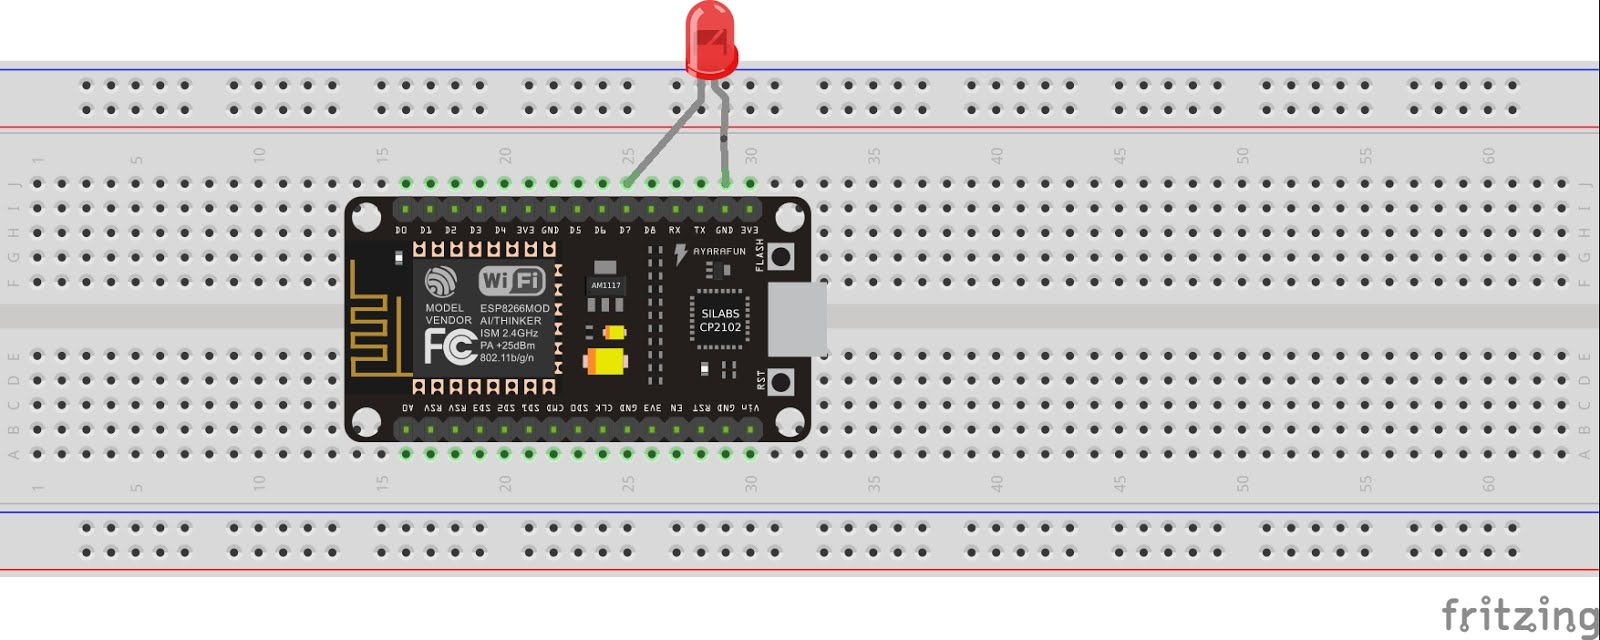 Getting Started With Esp Nodemcu Using Arduinoide Circuit Diagram Tutorial Connection Schematic Follow The For Connecting Module